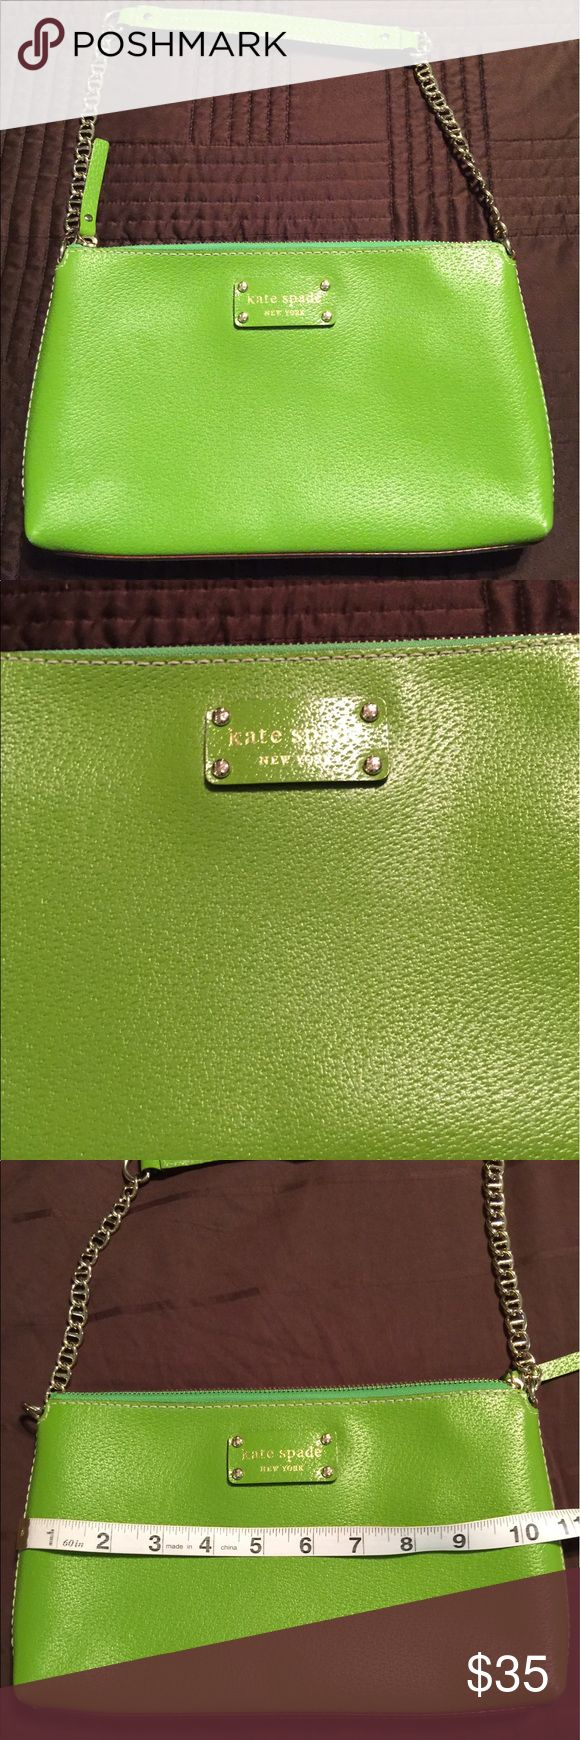 Kate Spade Green Shoulder Bag Kate Spade Green Shoulder Bag.  This purse is in excellent condition and comes from a smoke-feee/pet-free home.  The shoulder drop is approximately 8 inches.  Please request additional information/images if needed.  Thanks for viewing!! kate spade Bags Shoulder Bags